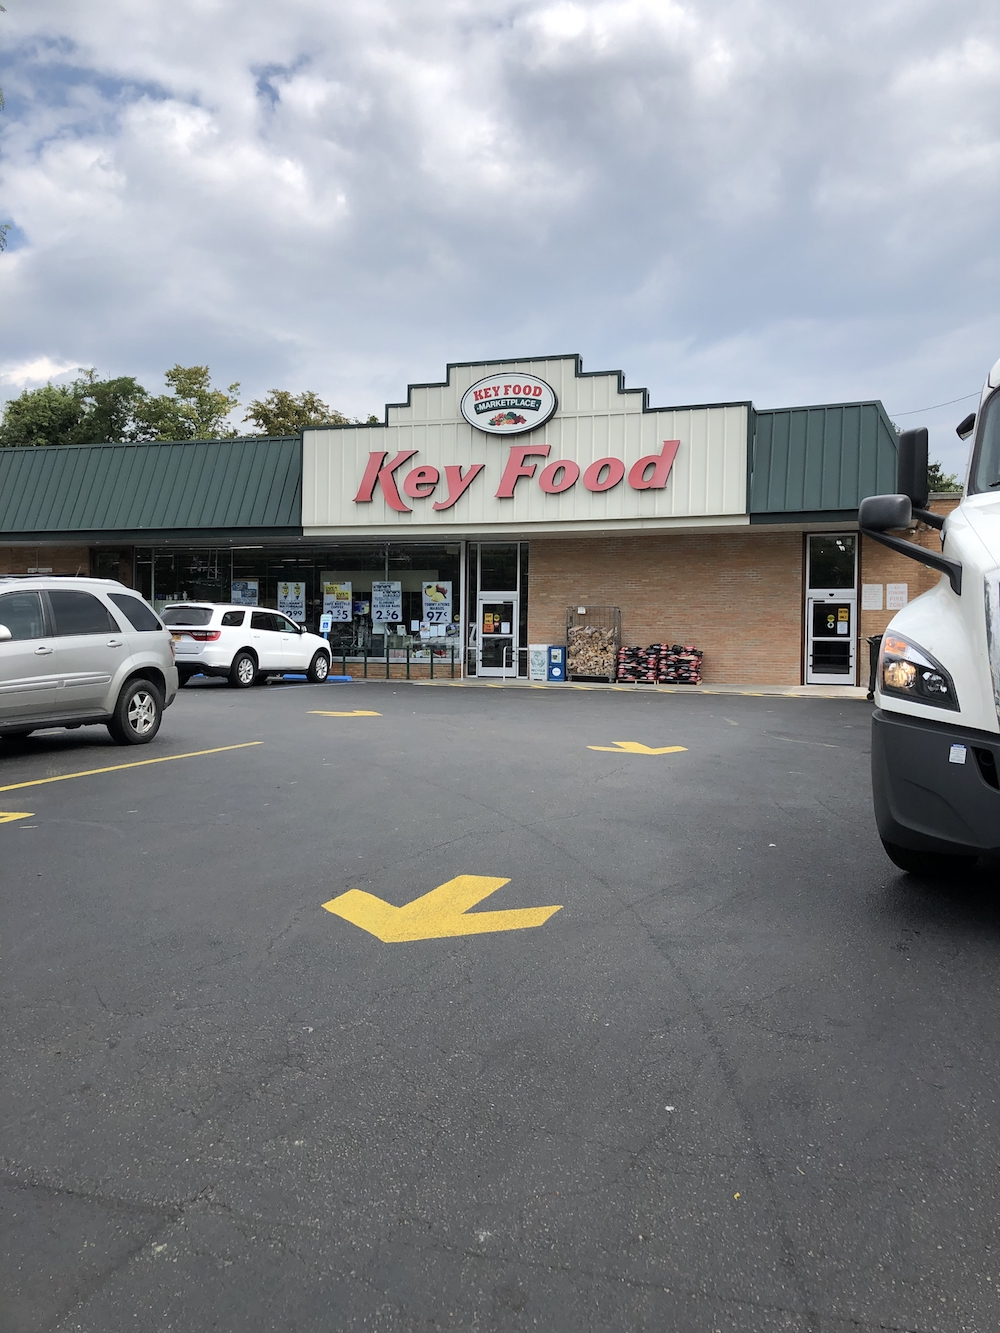 Key food parking lot-2.jpg